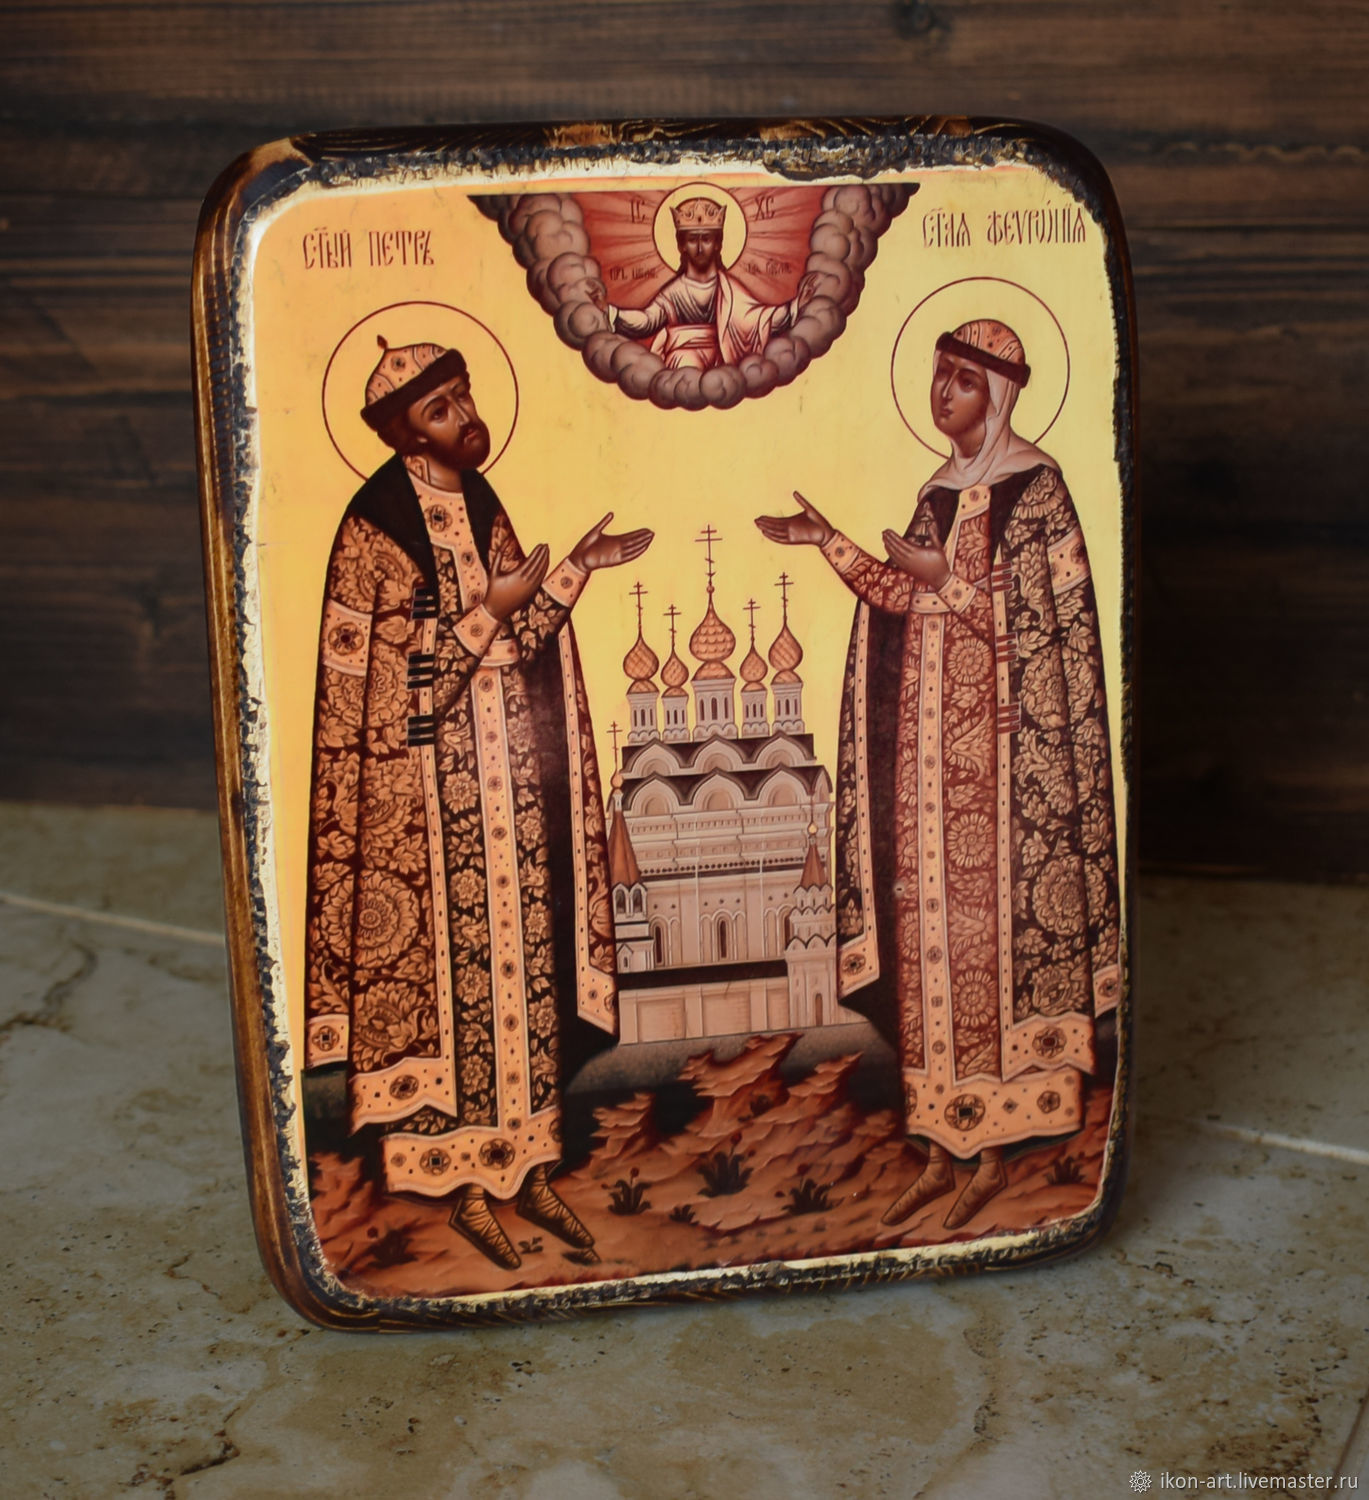 Wooden icon of Peter and Fevronia. Handmade. Size 16*21 cm. Wood, canvas, gesso, varnish, polishing.